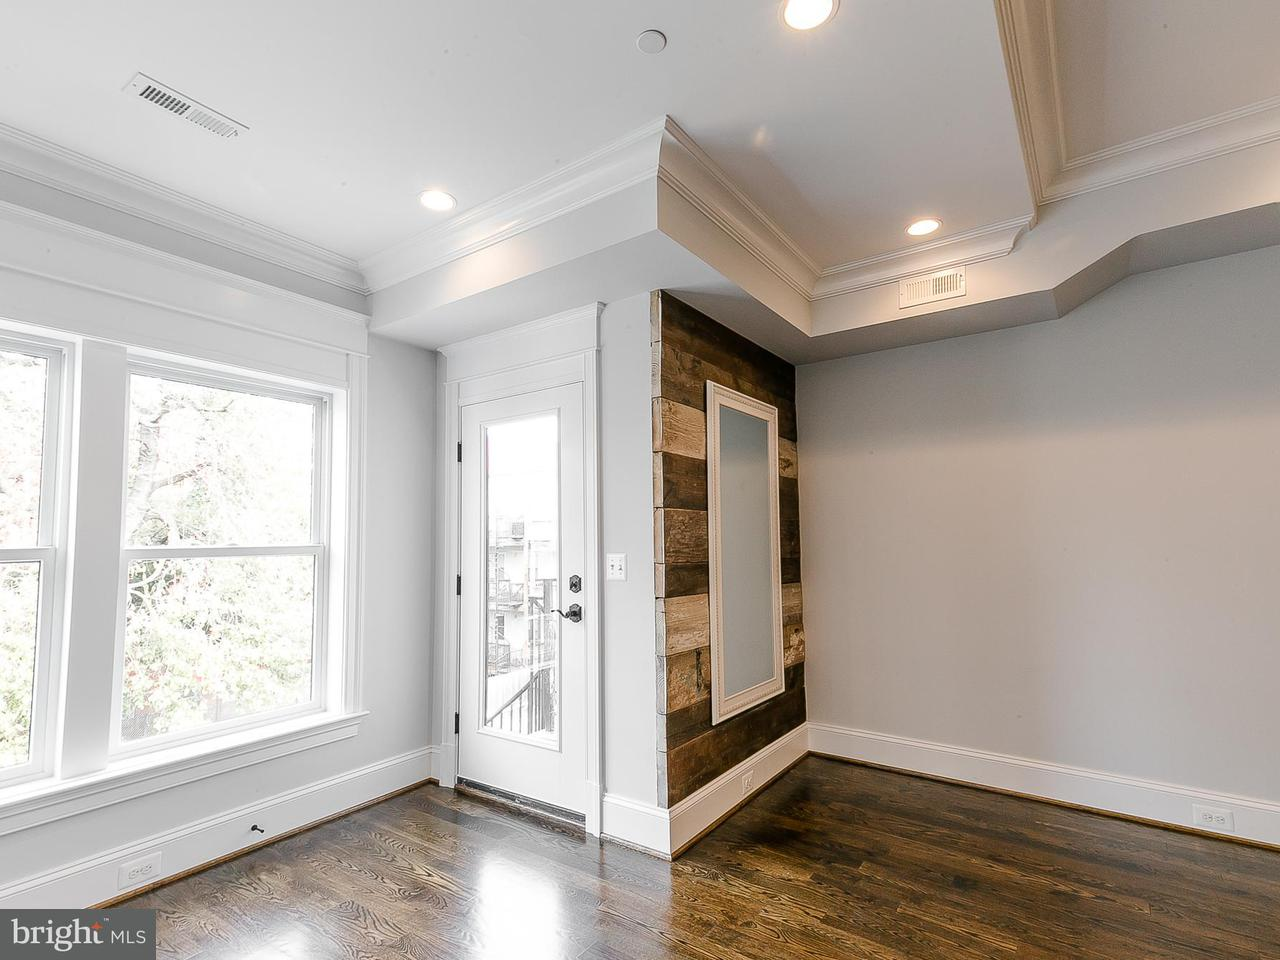 Additional photo for property listing at 1717 Euclid St NW #4  Washington, District Of Columbia 20009 United States